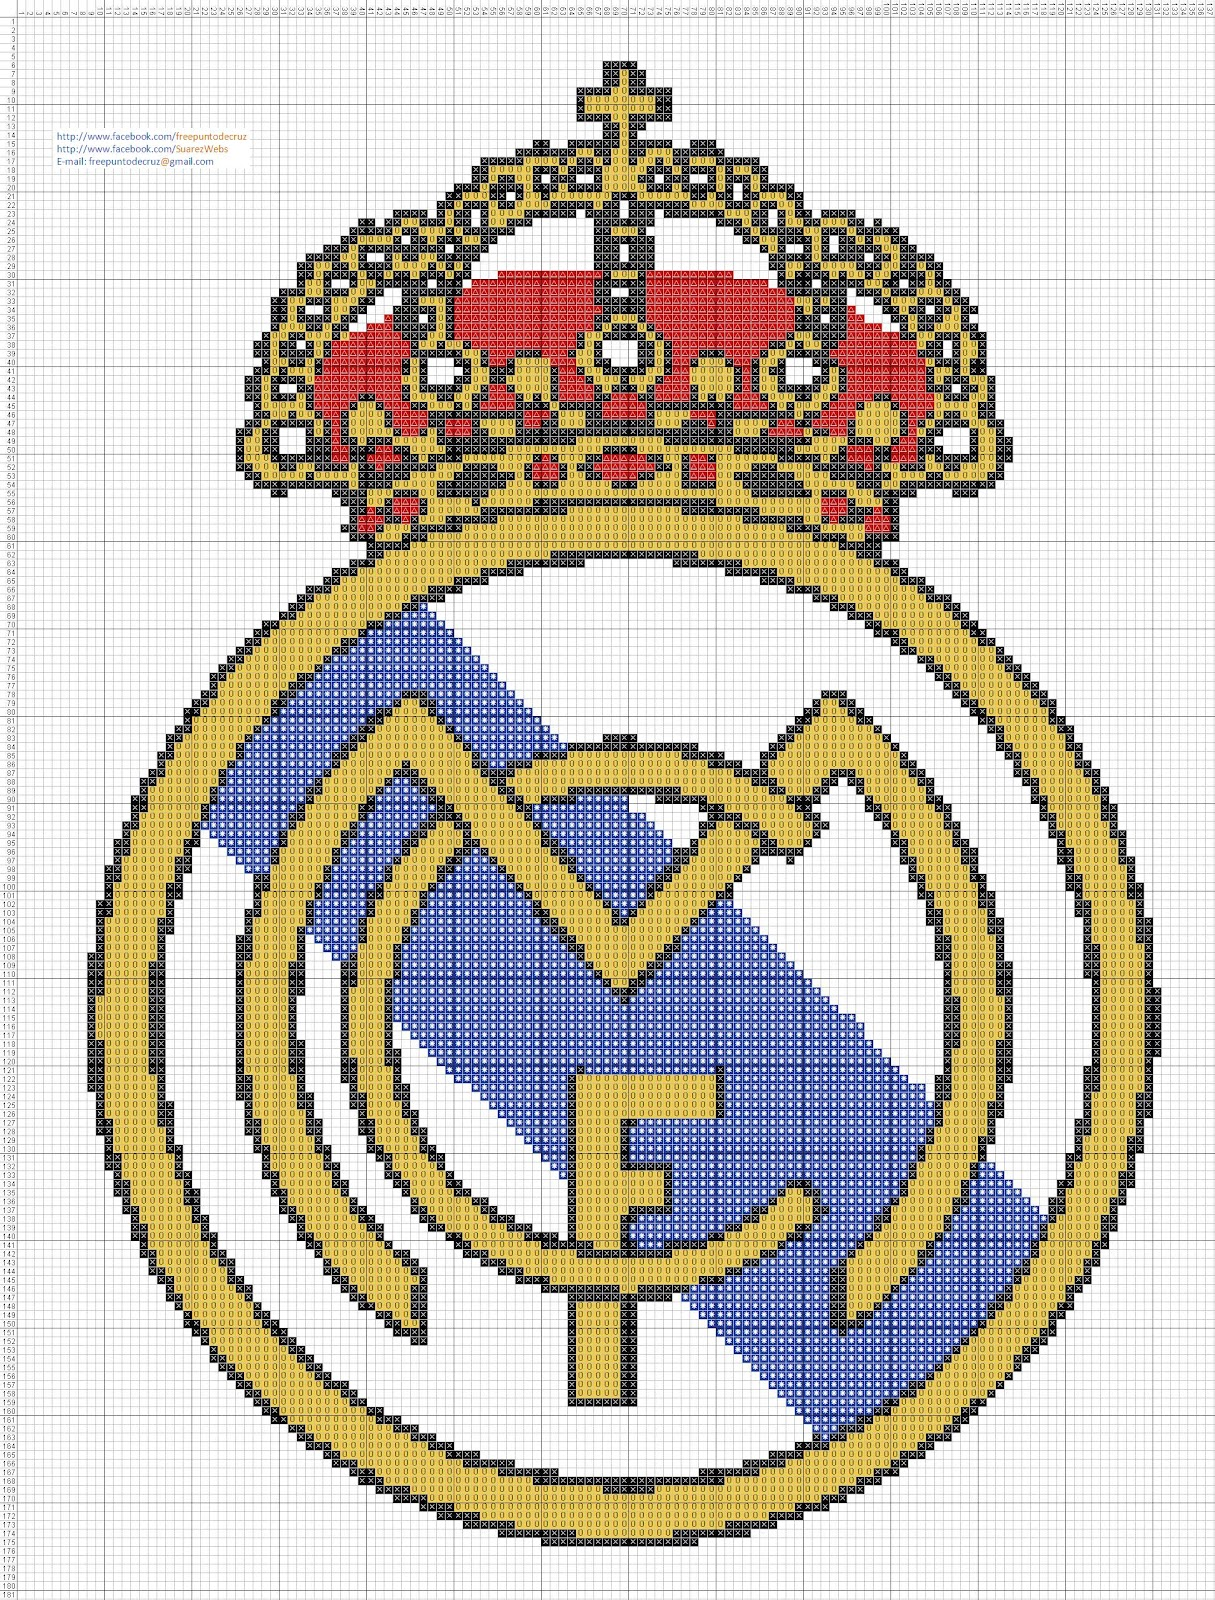 Fotos del Real Madrid - corazonblanco.com